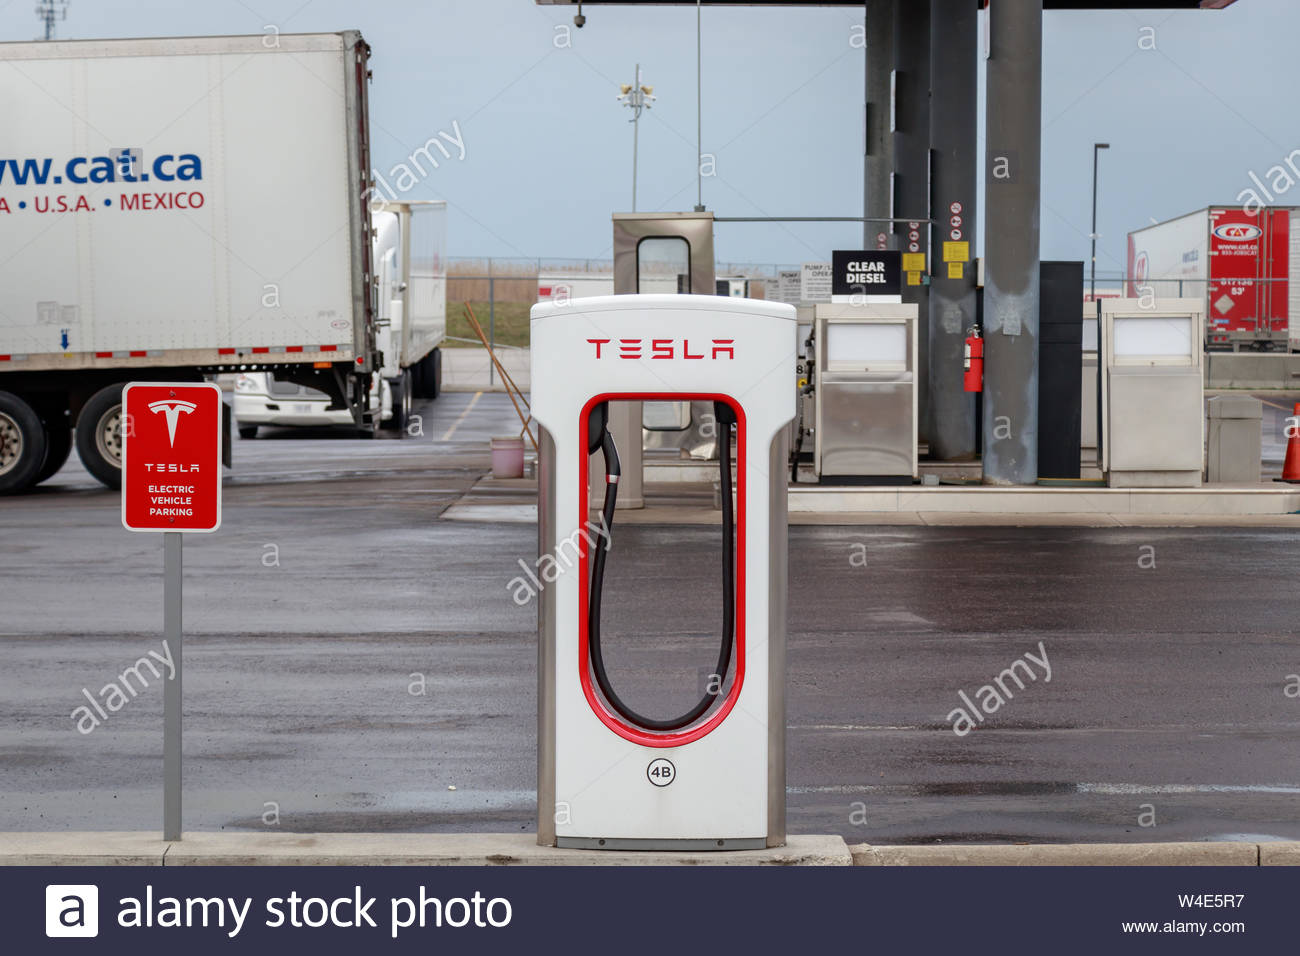 Tesla Supercharger Stall with a gas station and truck stop in the 1300x956